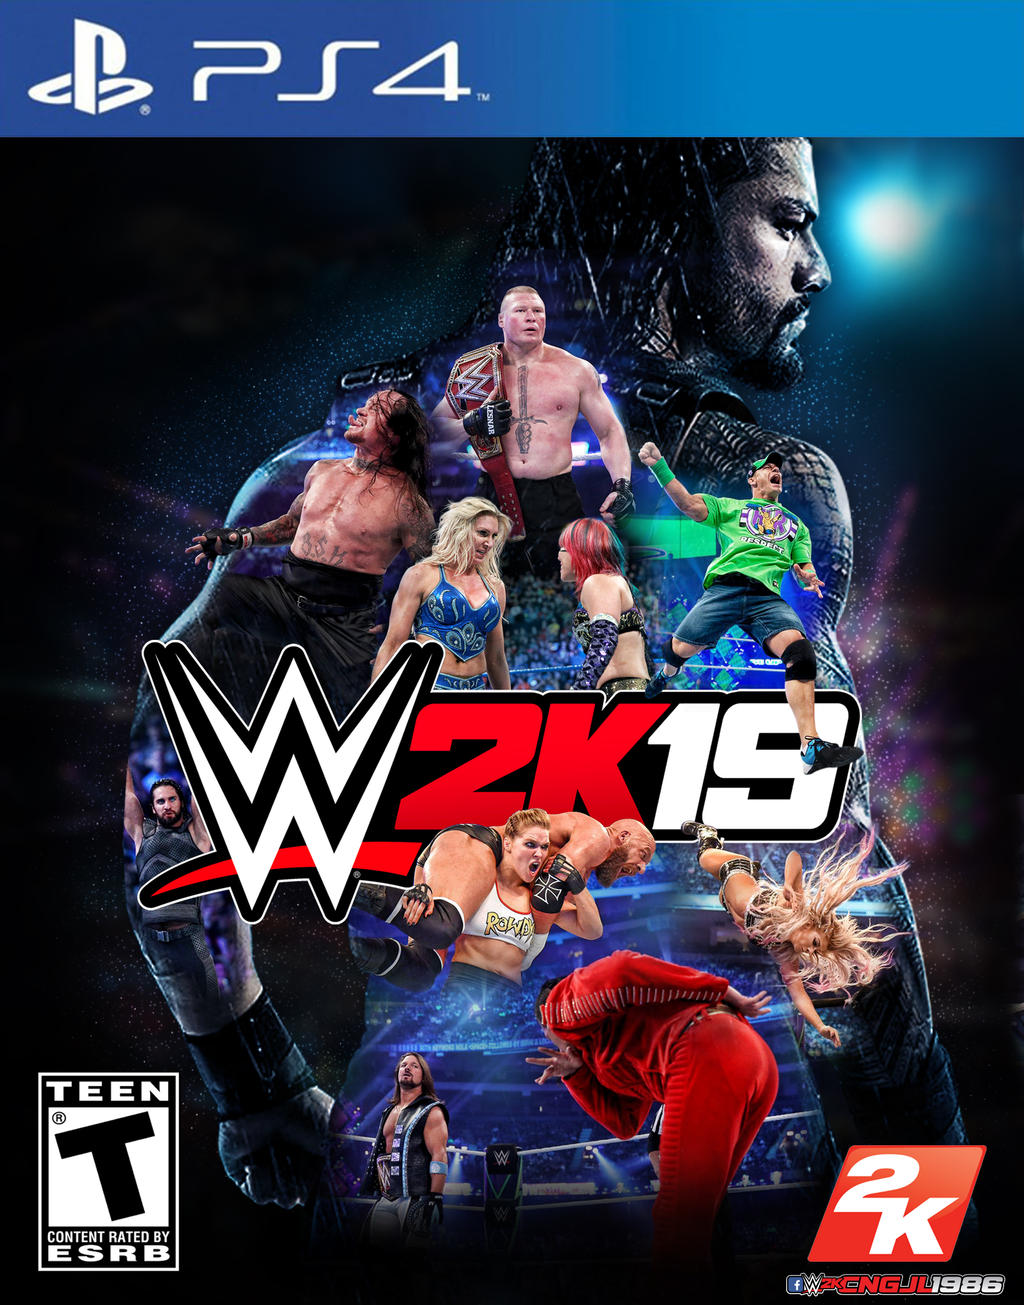 wwe_2k19_design_3_by_cngjl1986-dccev0s.j